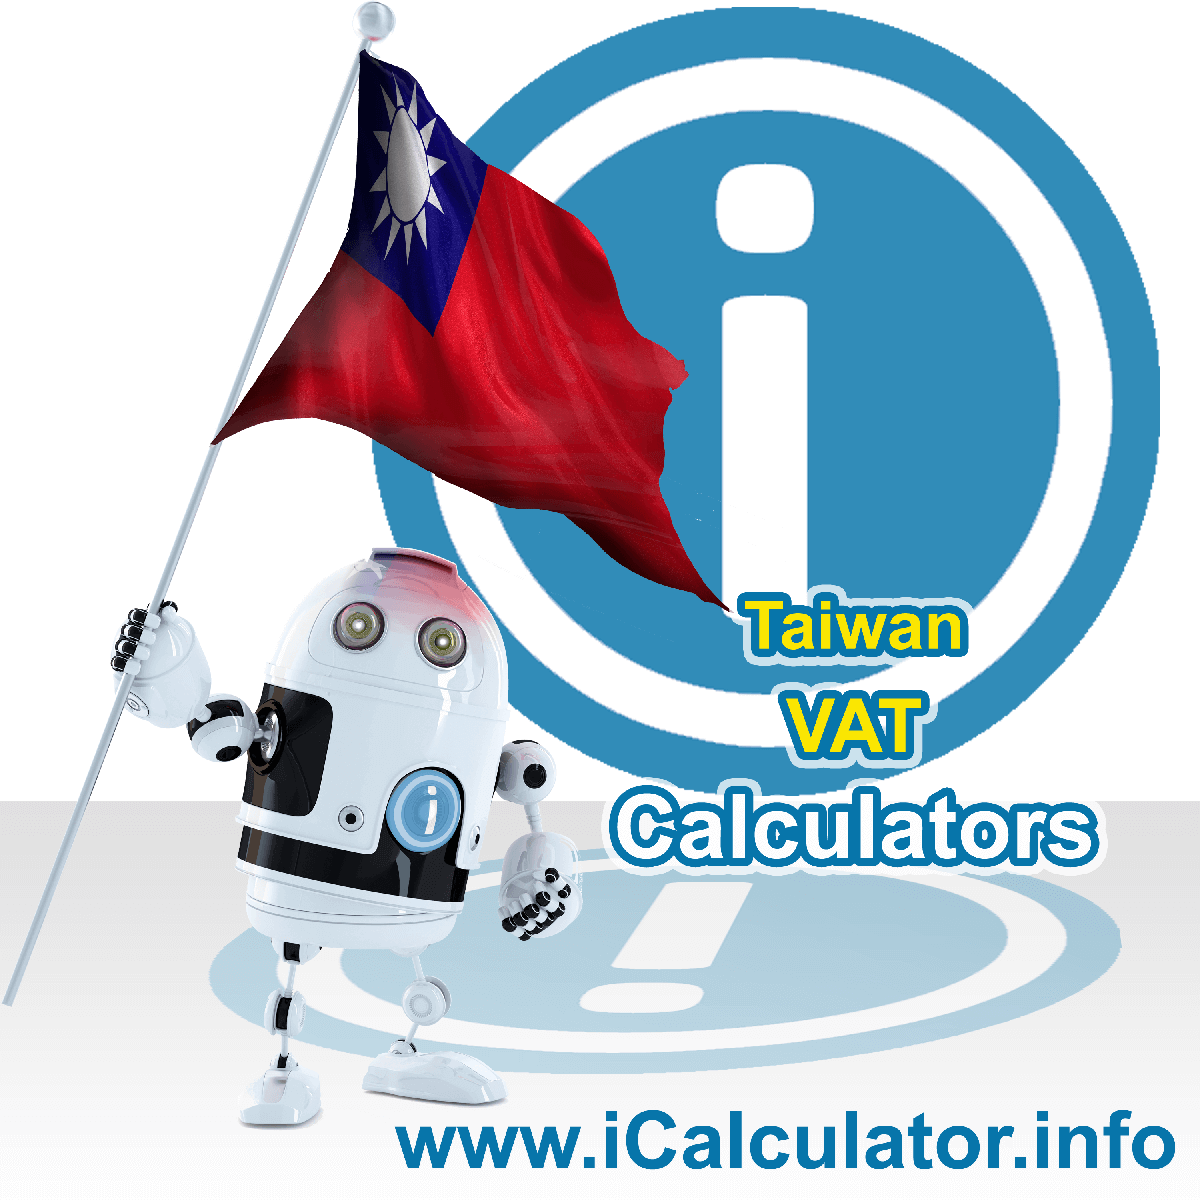 Taiwan VAT Calculator. This image shows the Taiwan flag and information relating to the VAT formula used for calculating Value Added Tax in Taiwan using the Taiwan VAT Calculator in 2020